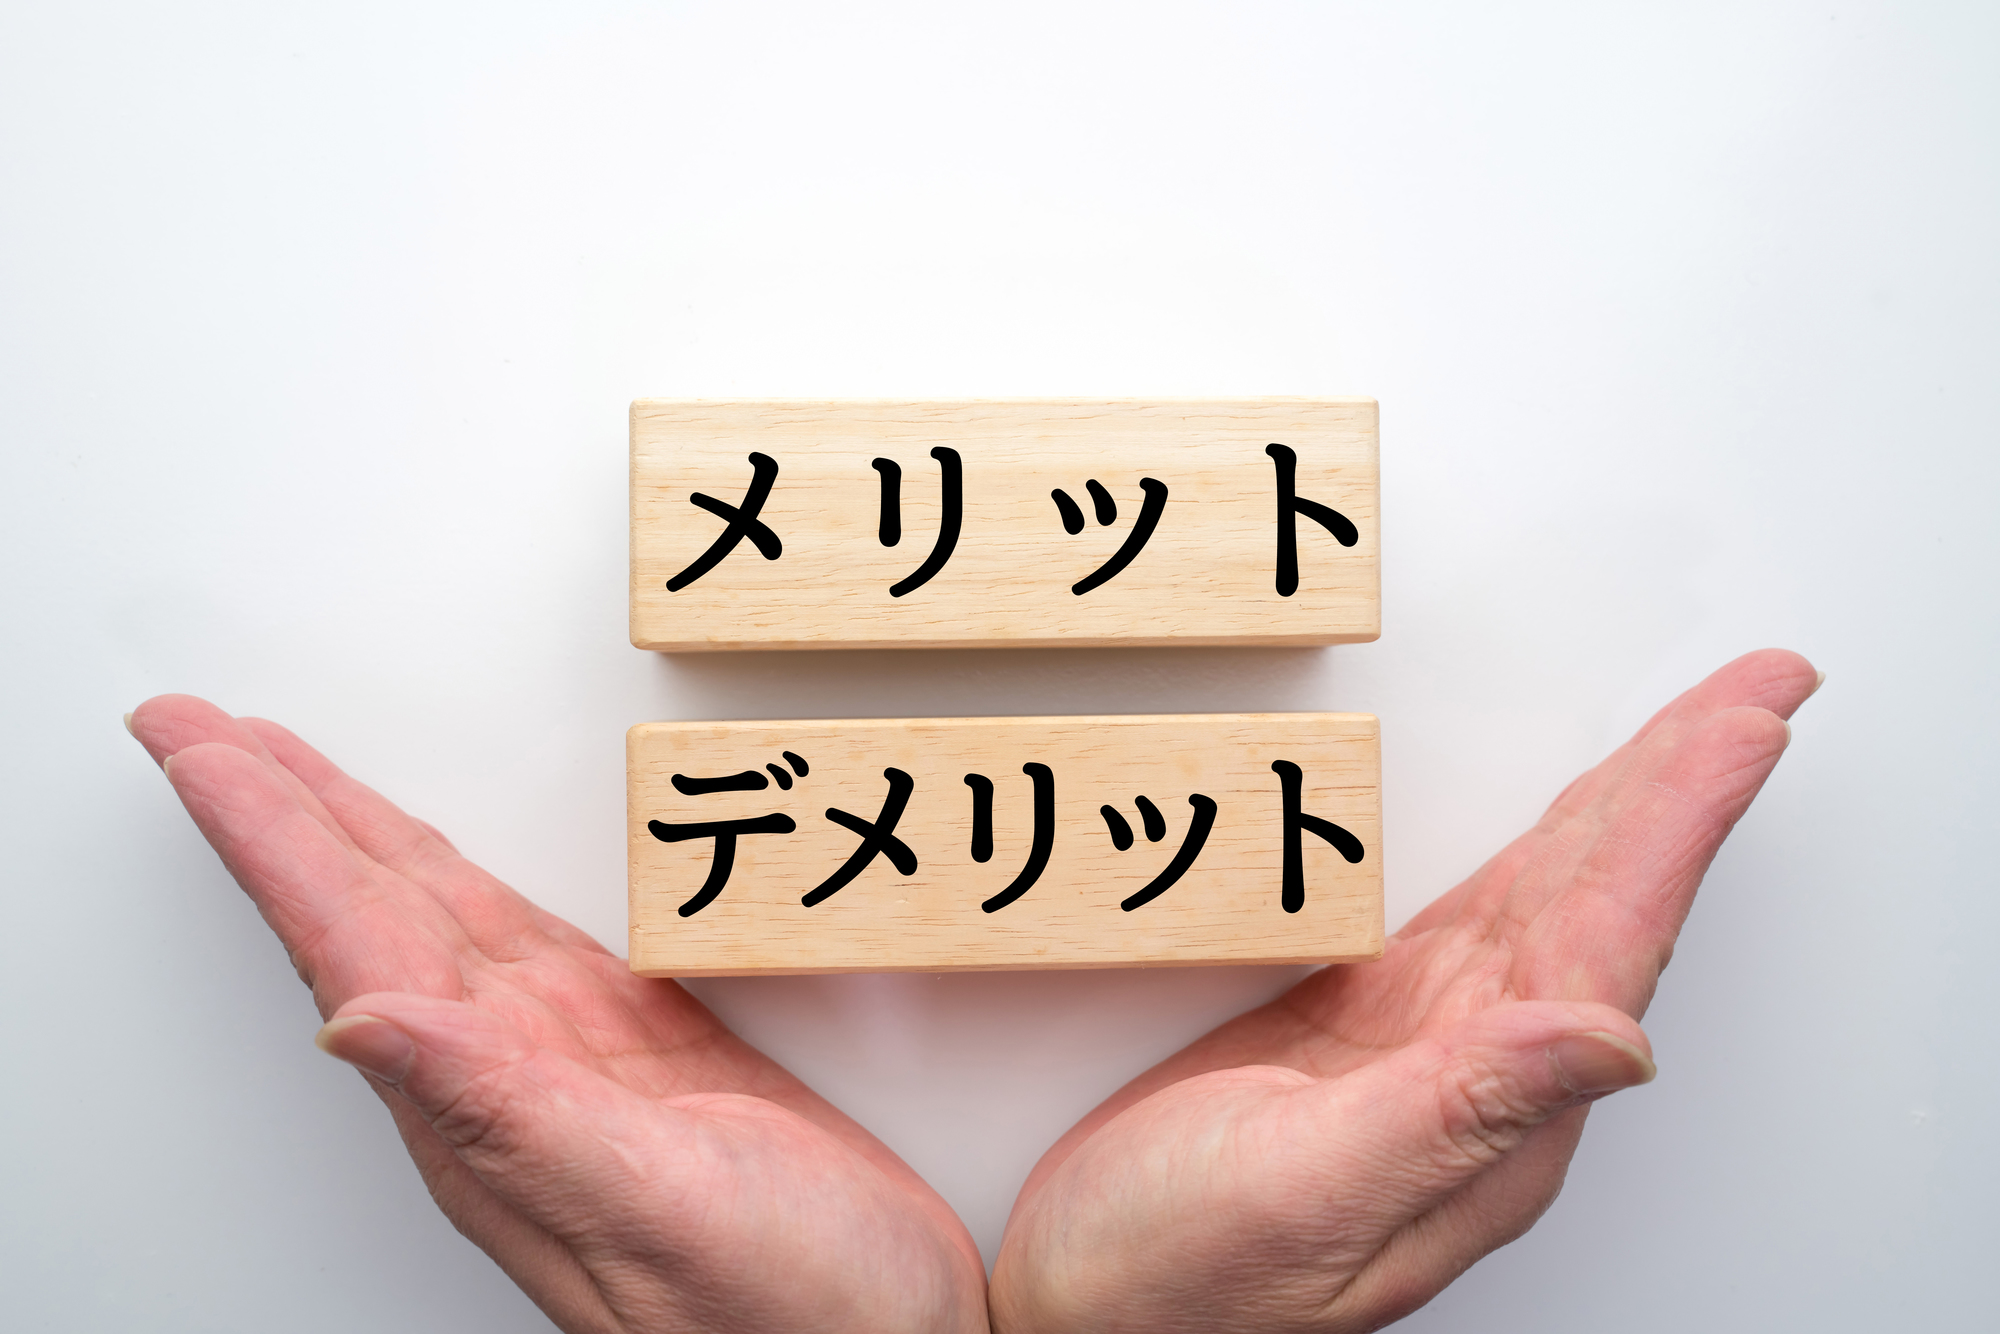 """<span class=""""title"""">【タイプ別】業務用エアコンのタイプによって違う!メリットとデメリット</span>"""